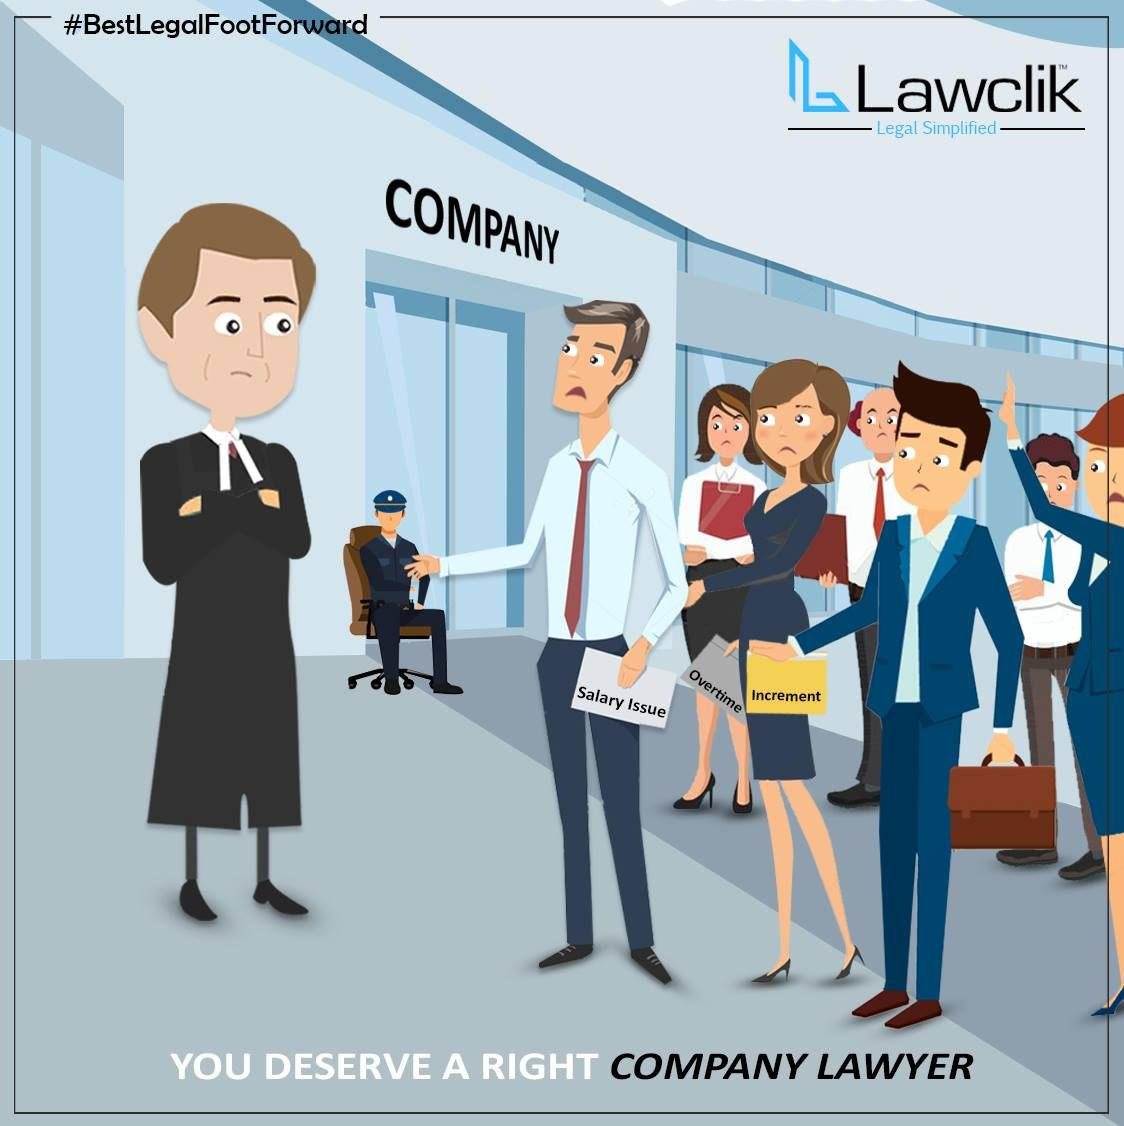 You Deserve A Right Company Lawyer Lawclik Covers All Your Legal